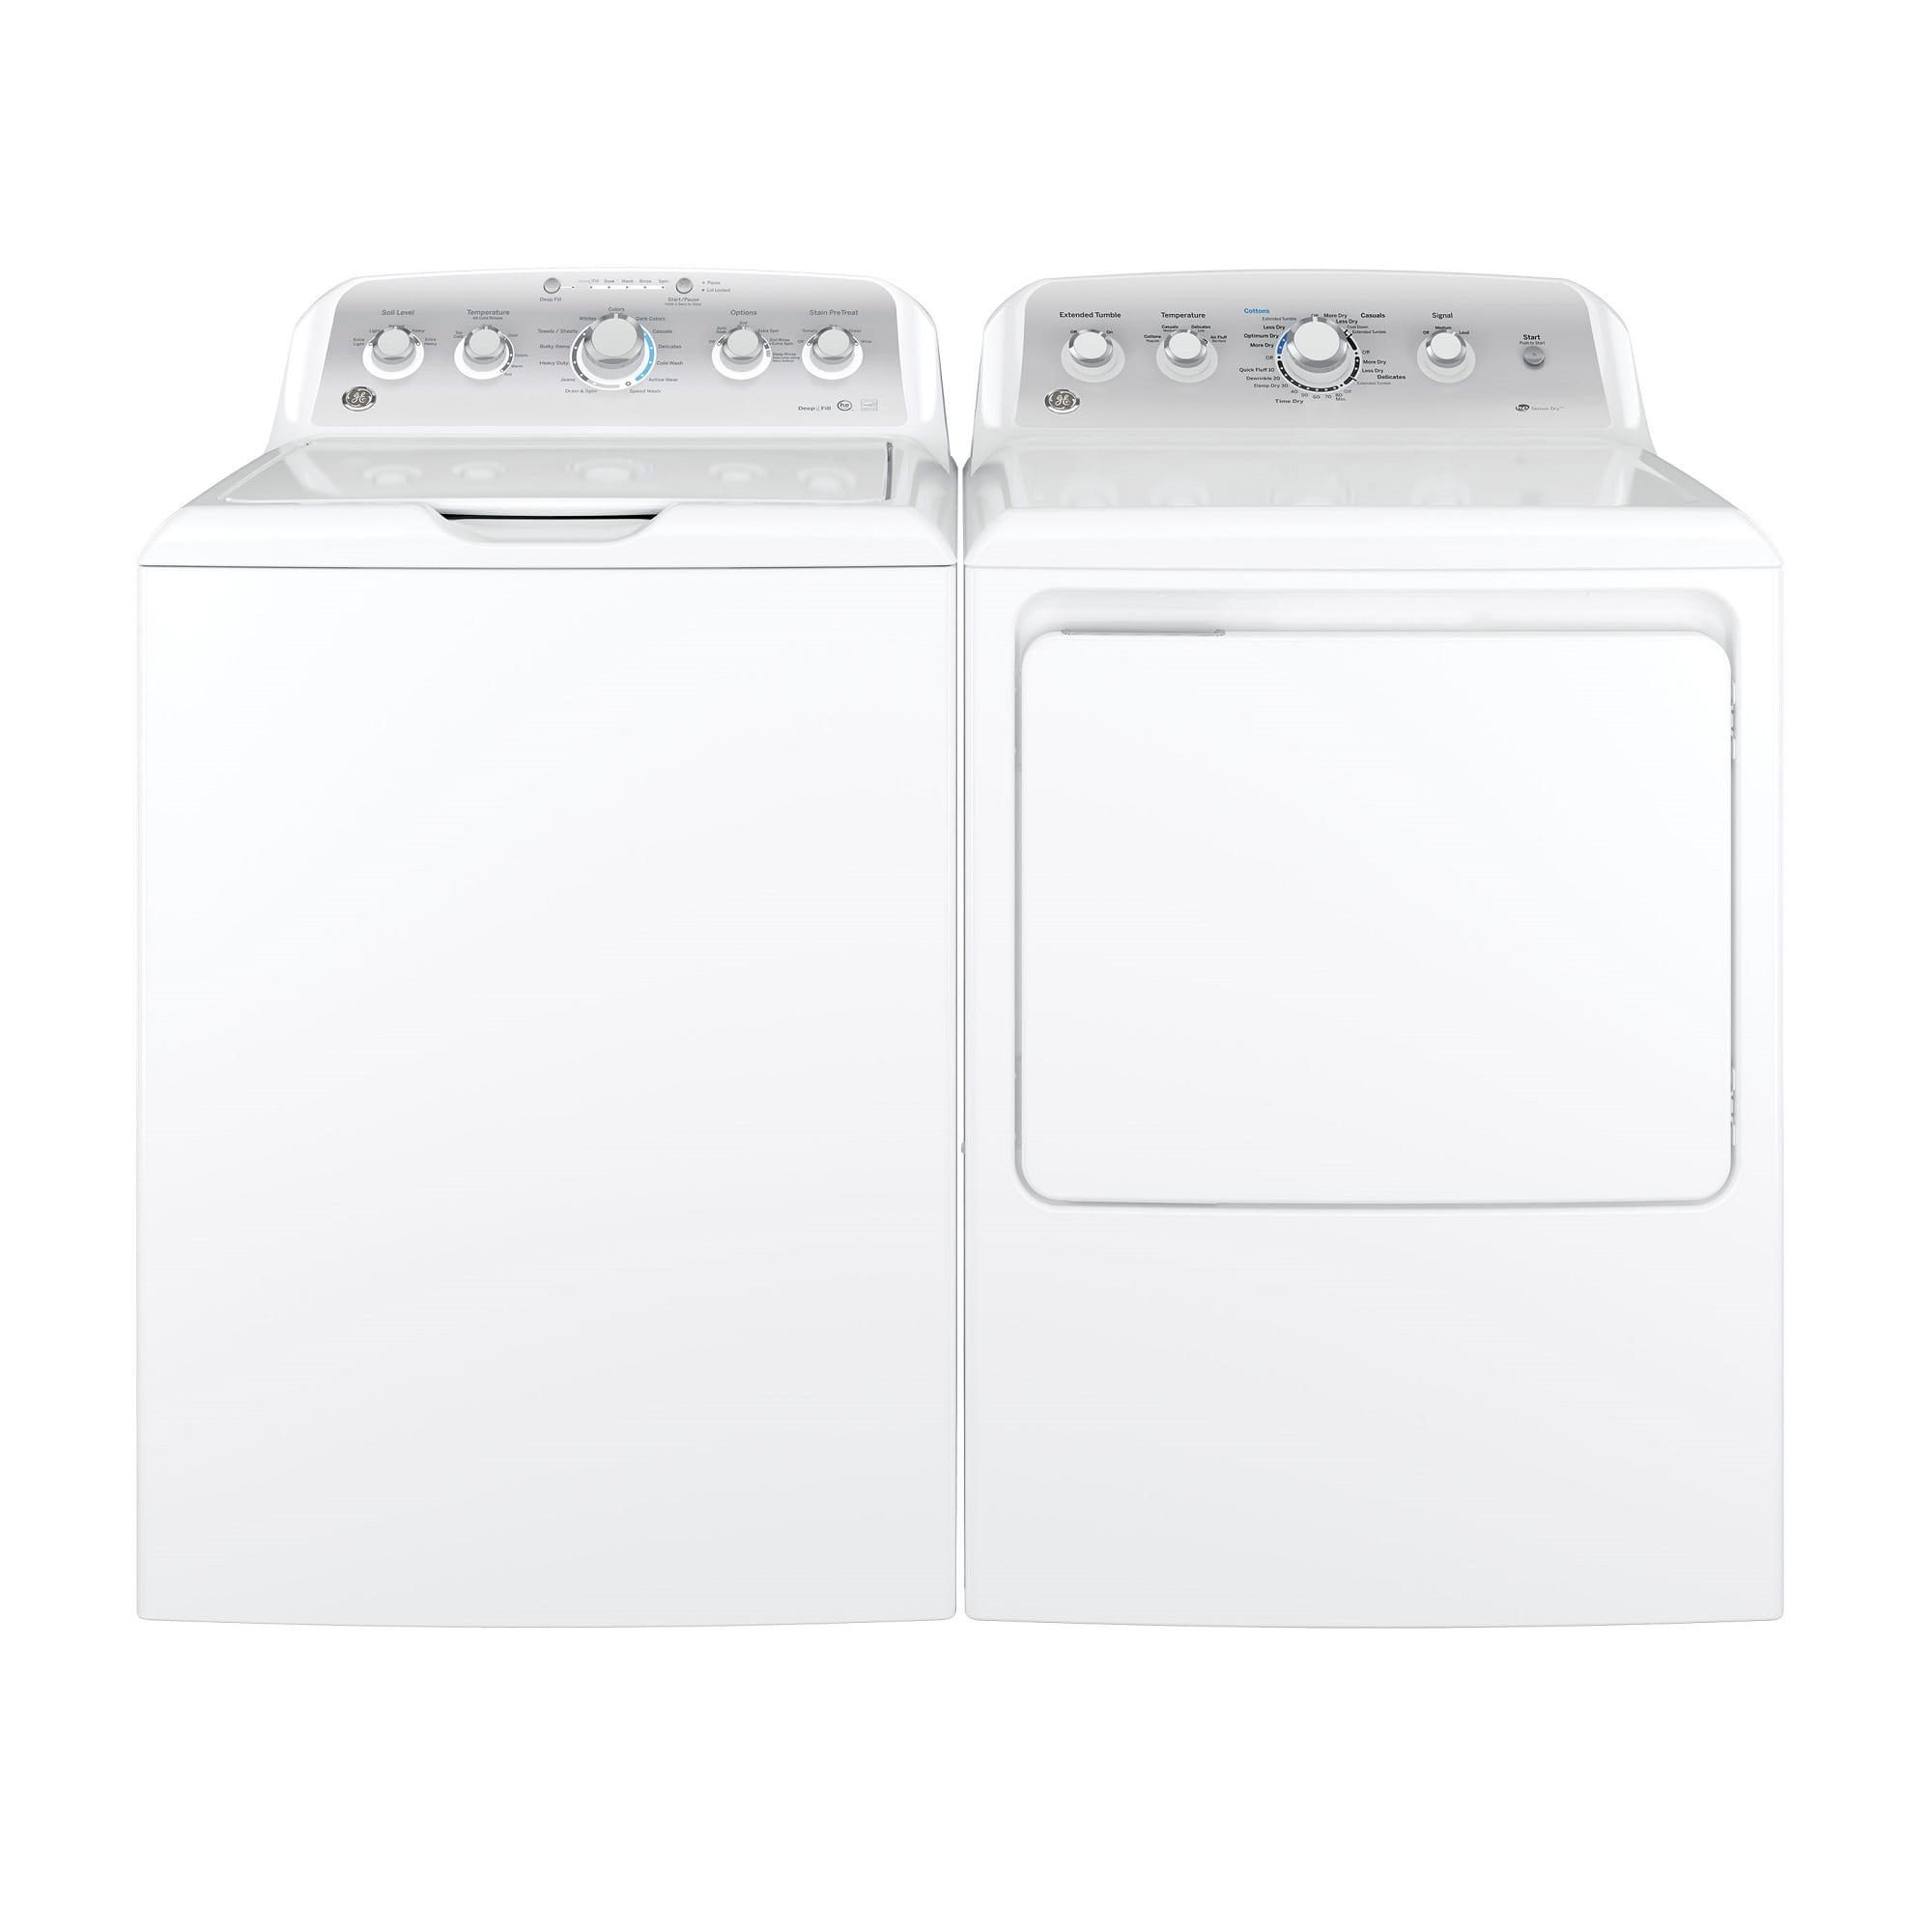 4.4 cu. ft. HE Top Load Washer &  7.2 cu. ft. Gas Dryer